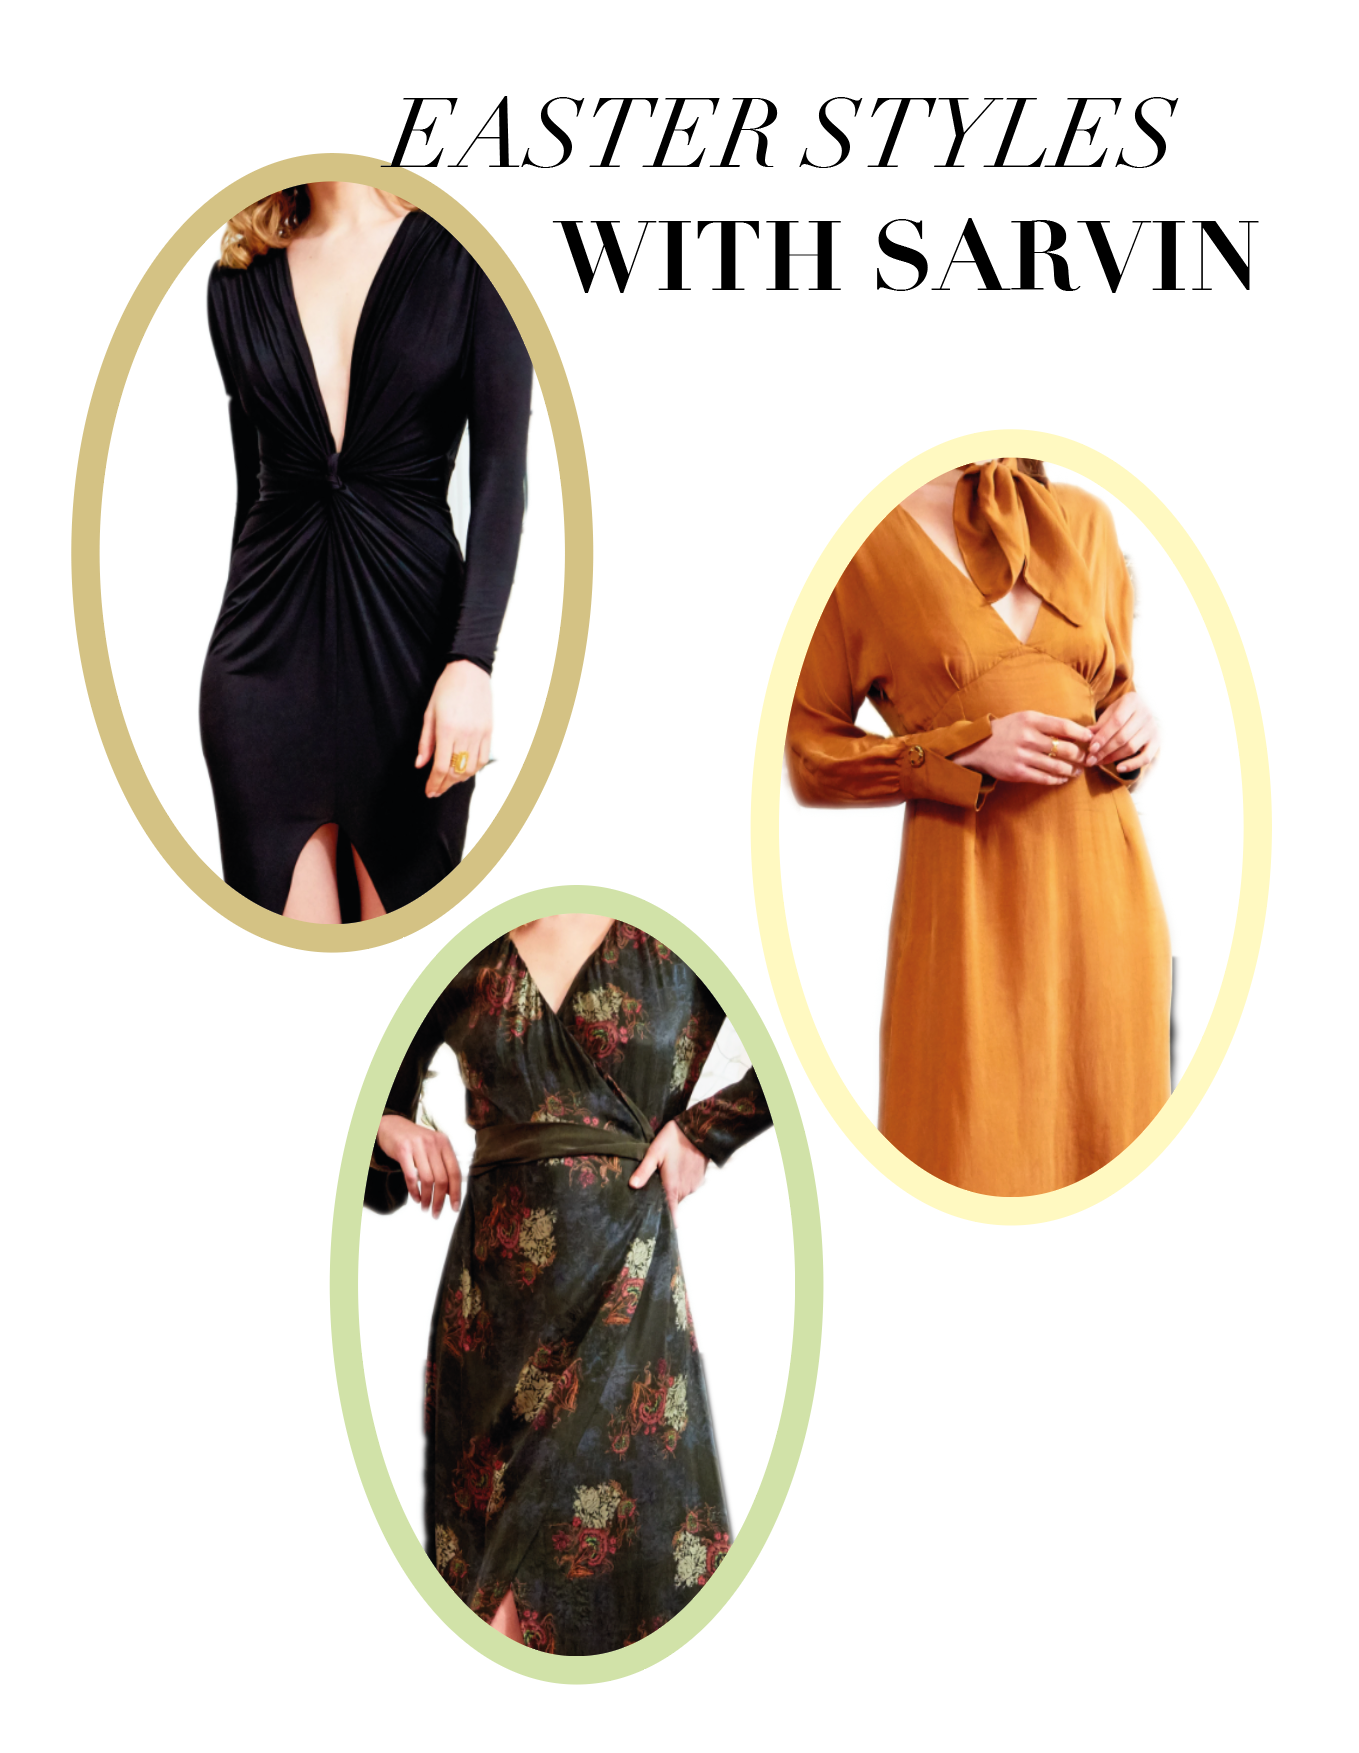 EASTER STYLES AT SARVIN: 20% OFF EASTER DISCOUNT